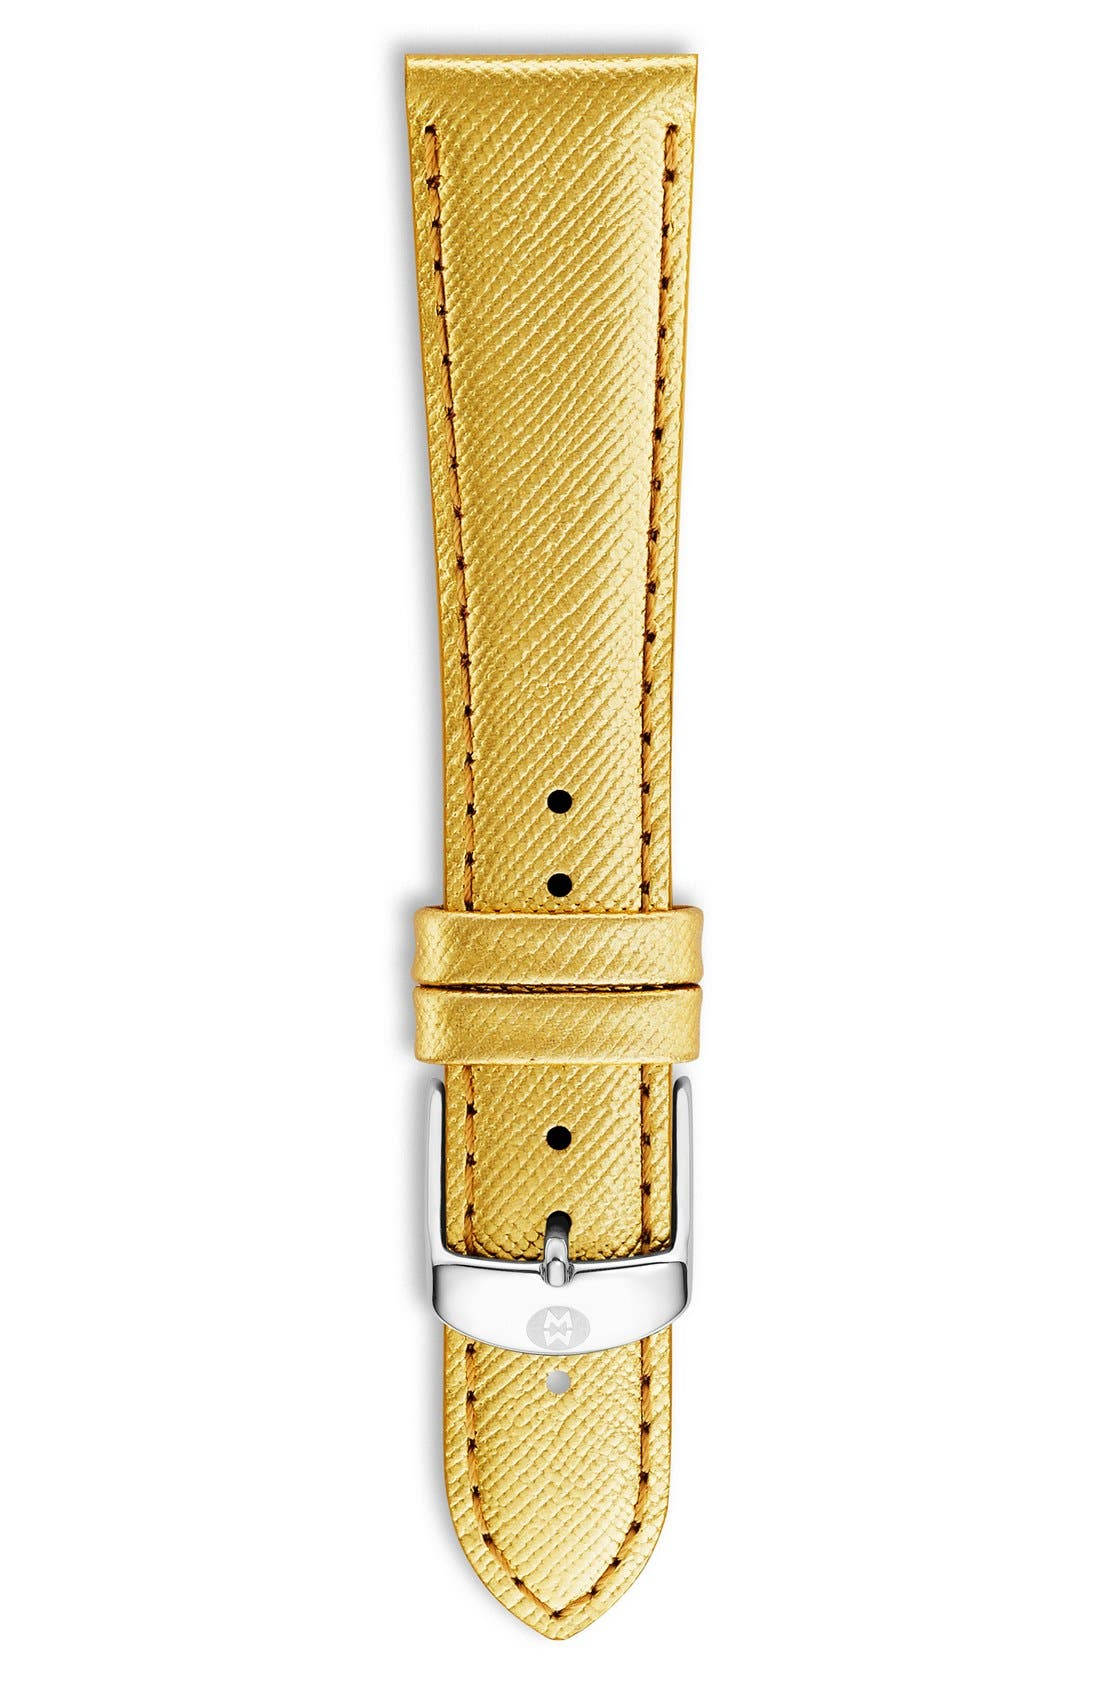 20mm Metallic Leather Watch Strap,                         Main,                         color, Metallic Gold